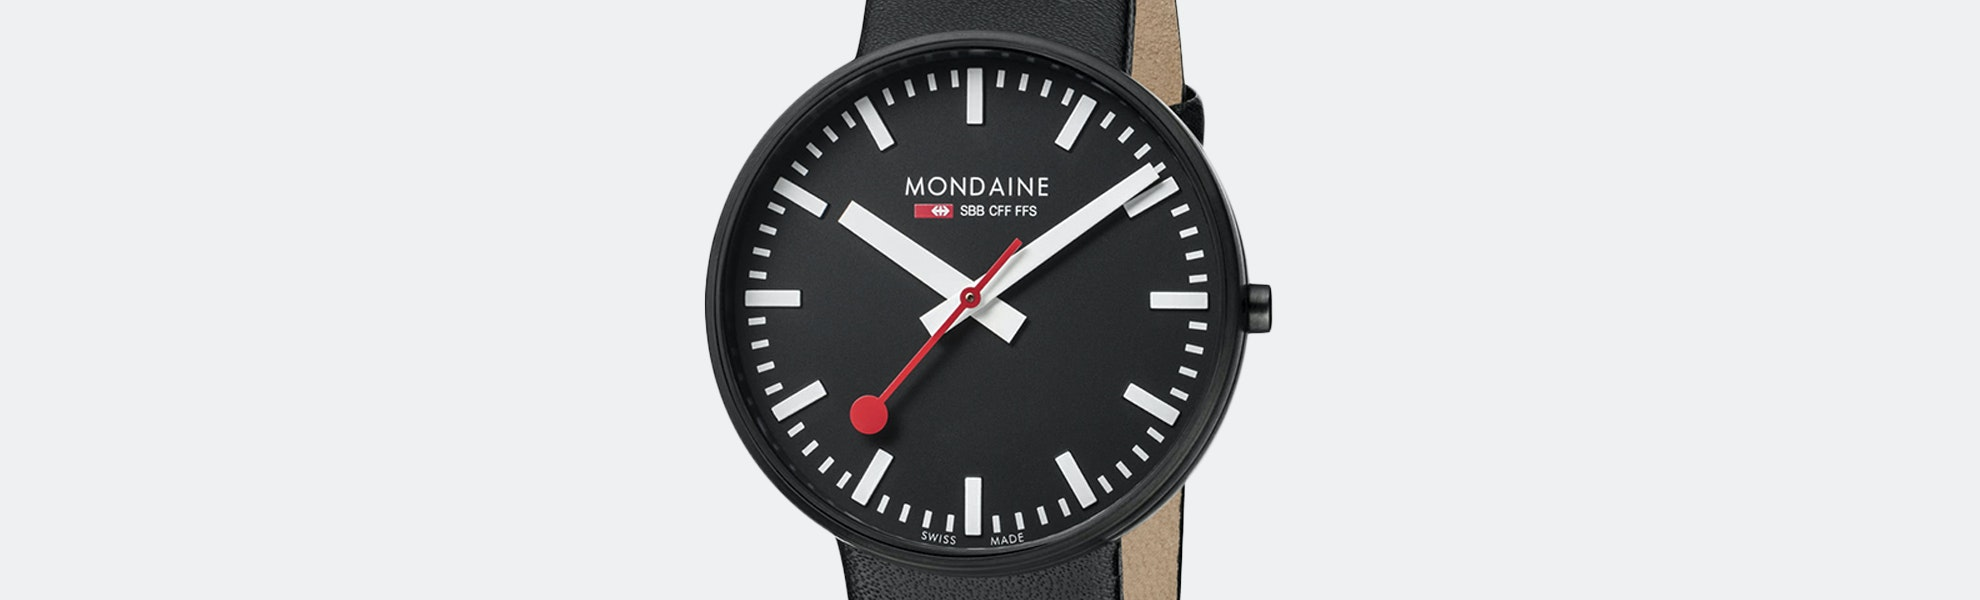 Mondaine Giant Quartz Watch